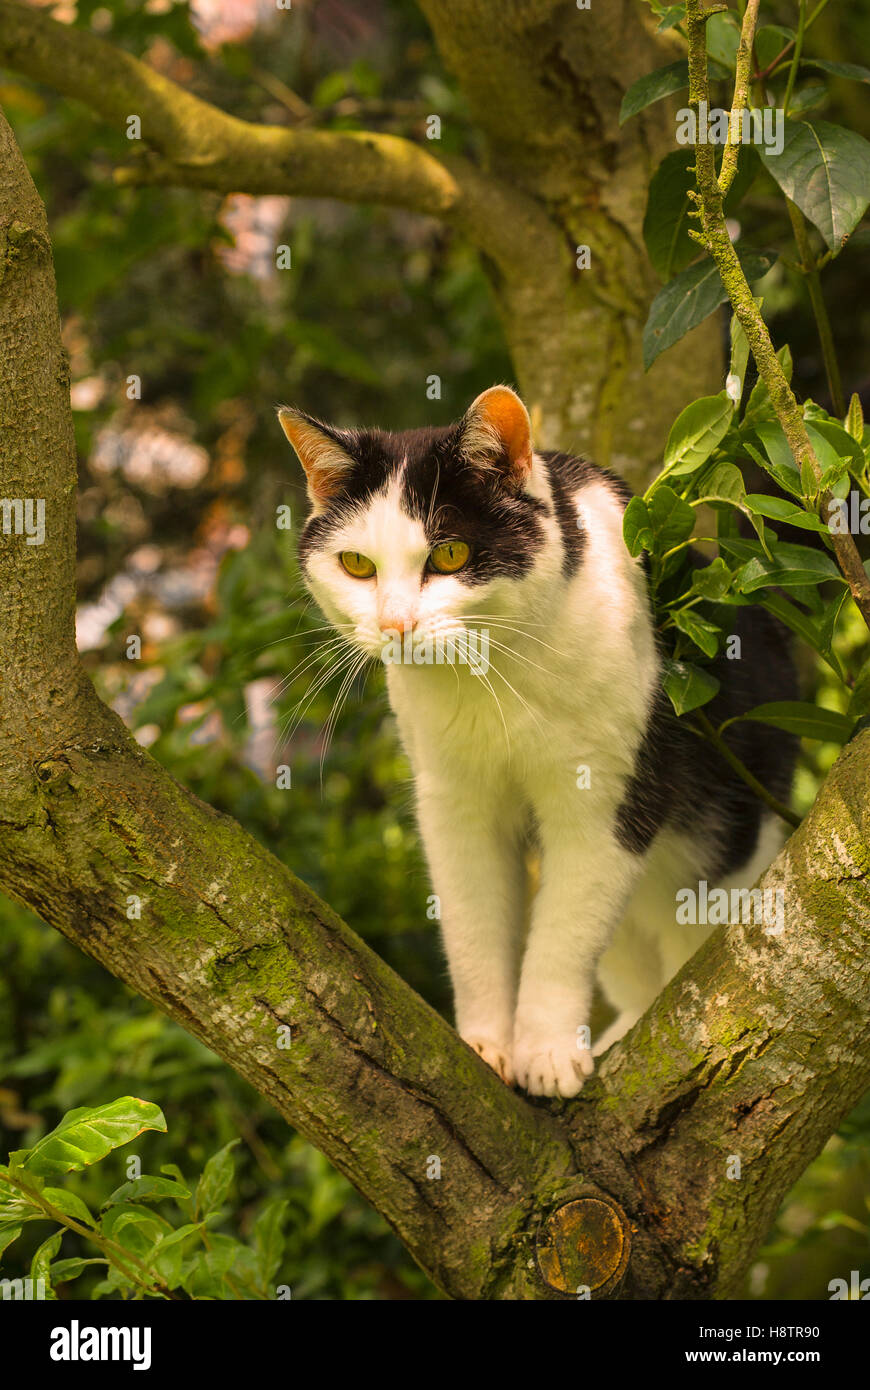 Black and white cat outdoors stalking prey from the fork of a tree - Stock Image